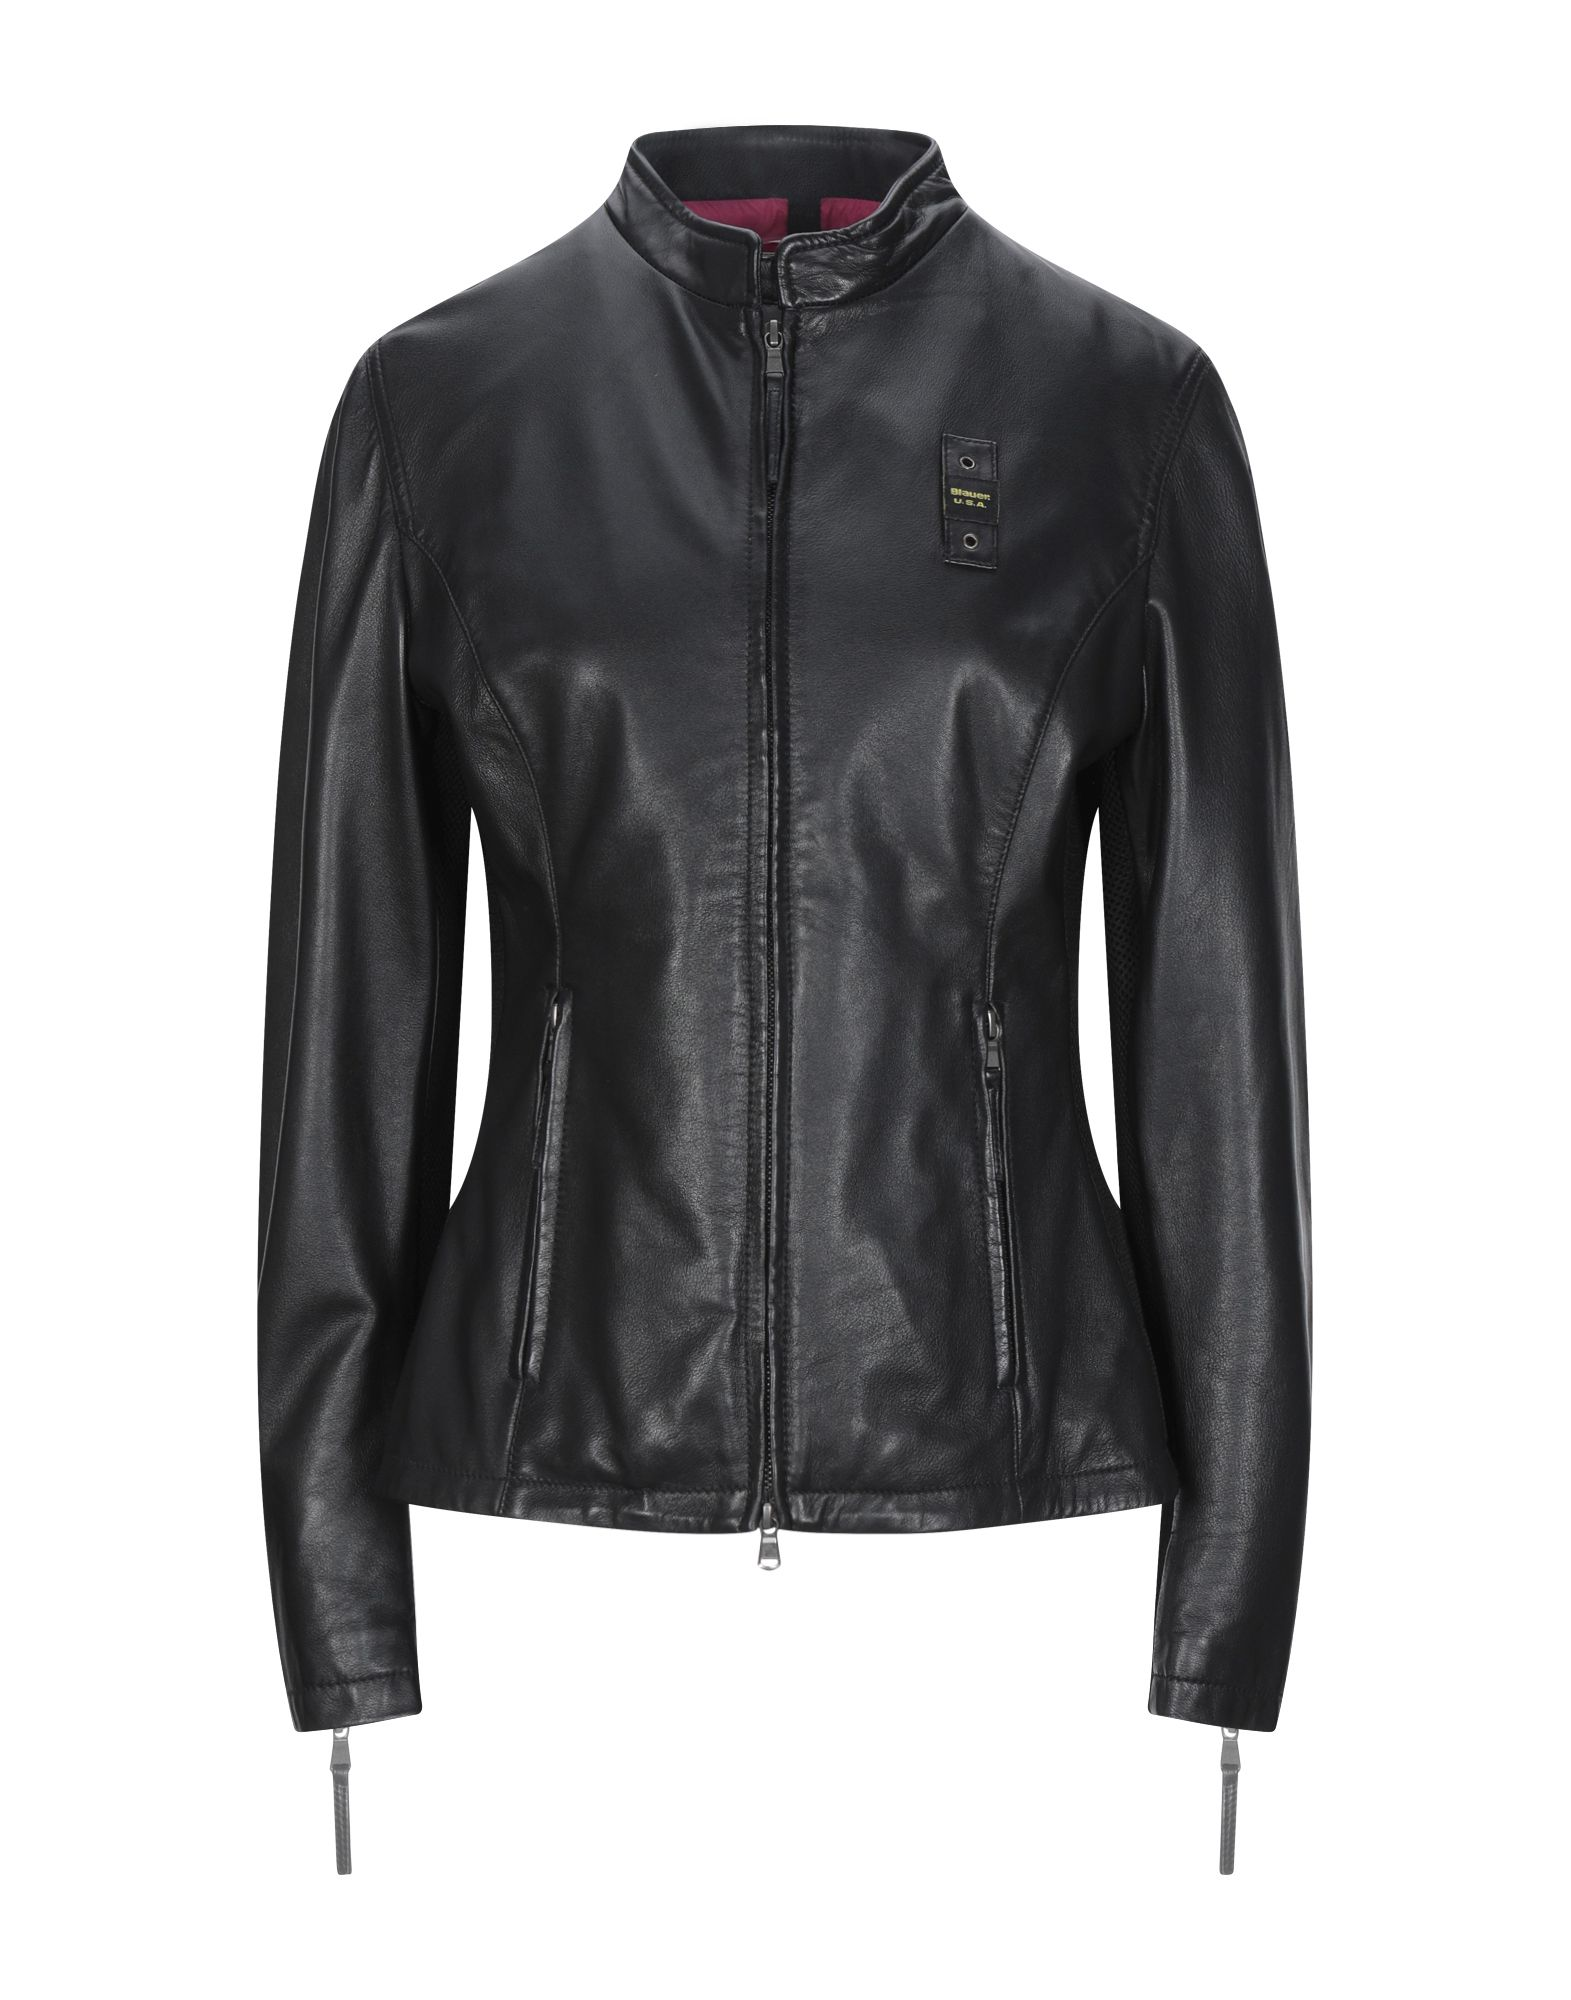 BLAUER Jackets - Item 41939584